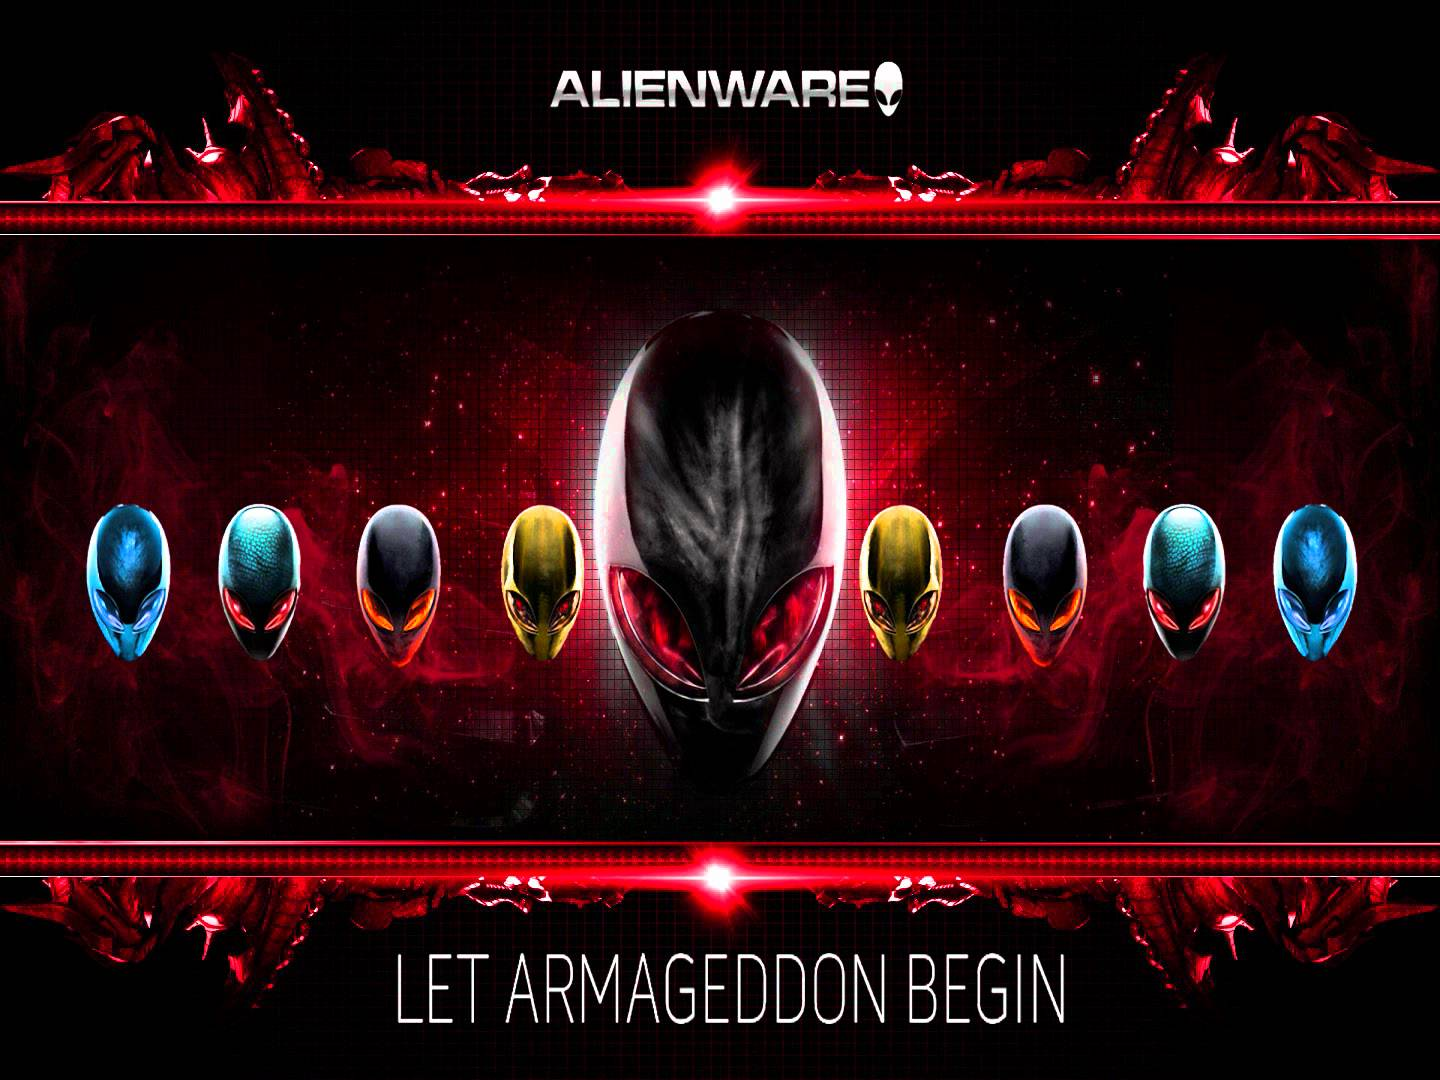 Download Red Alienware Wallpaper Hd Gallery